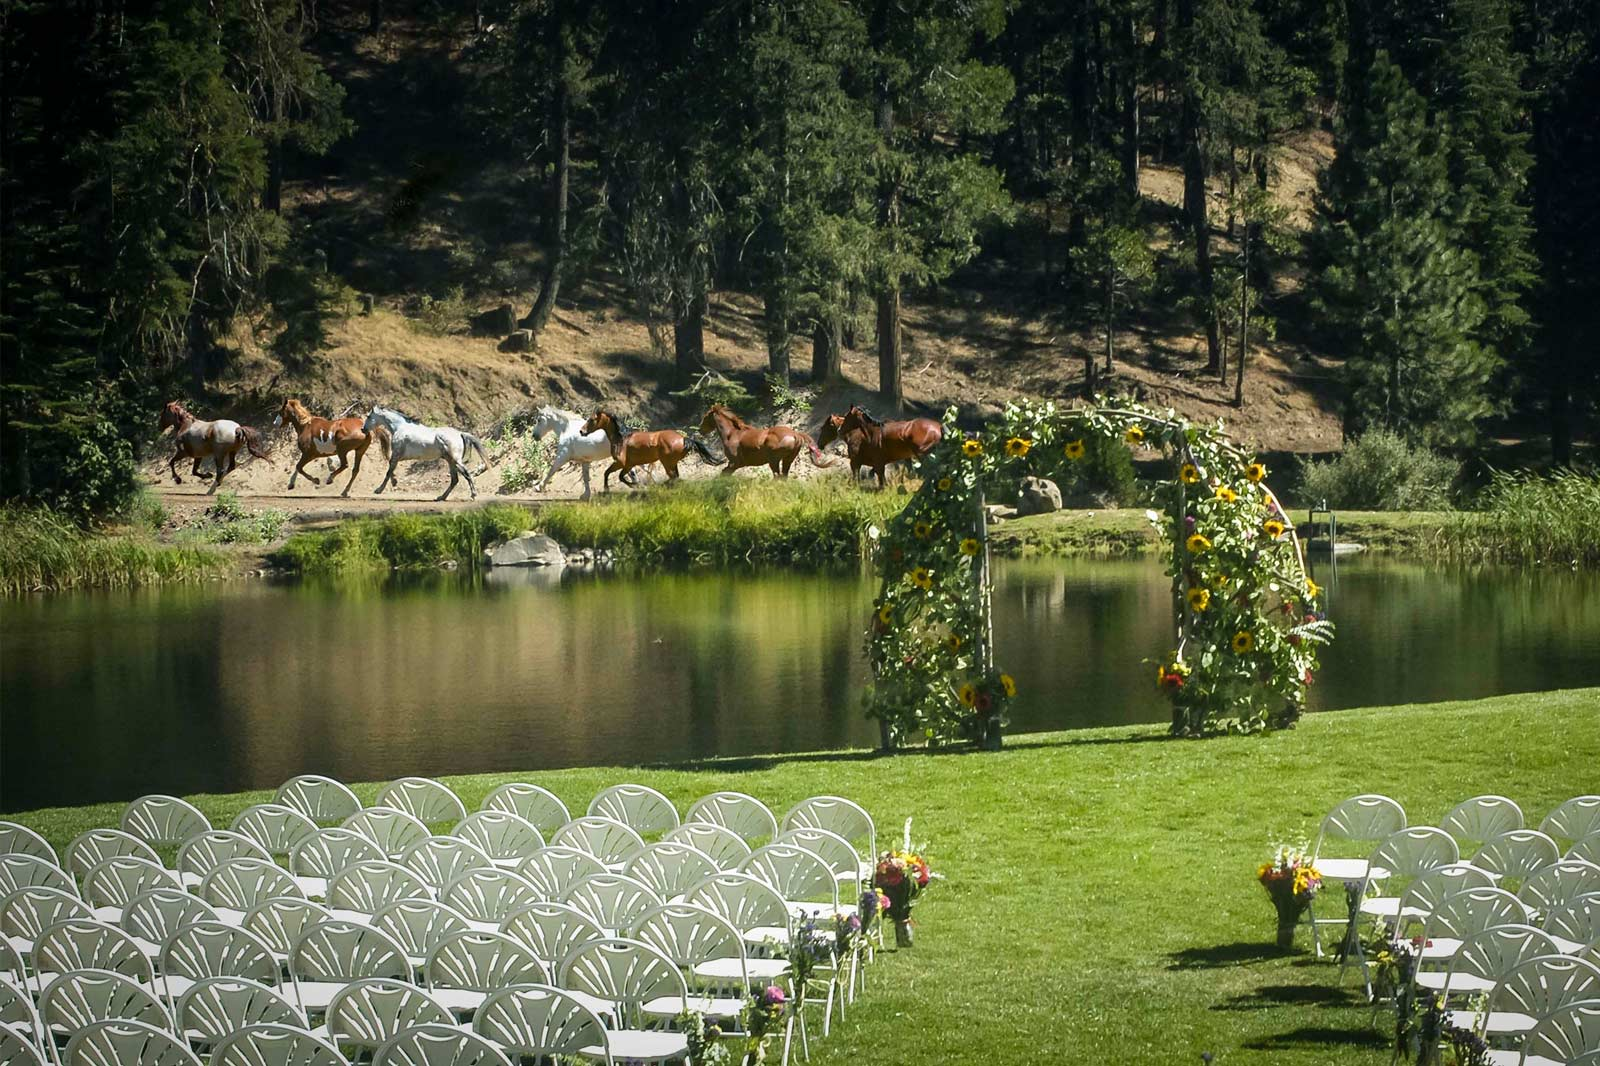 Horses galloping on the other side of the pond from a wedding